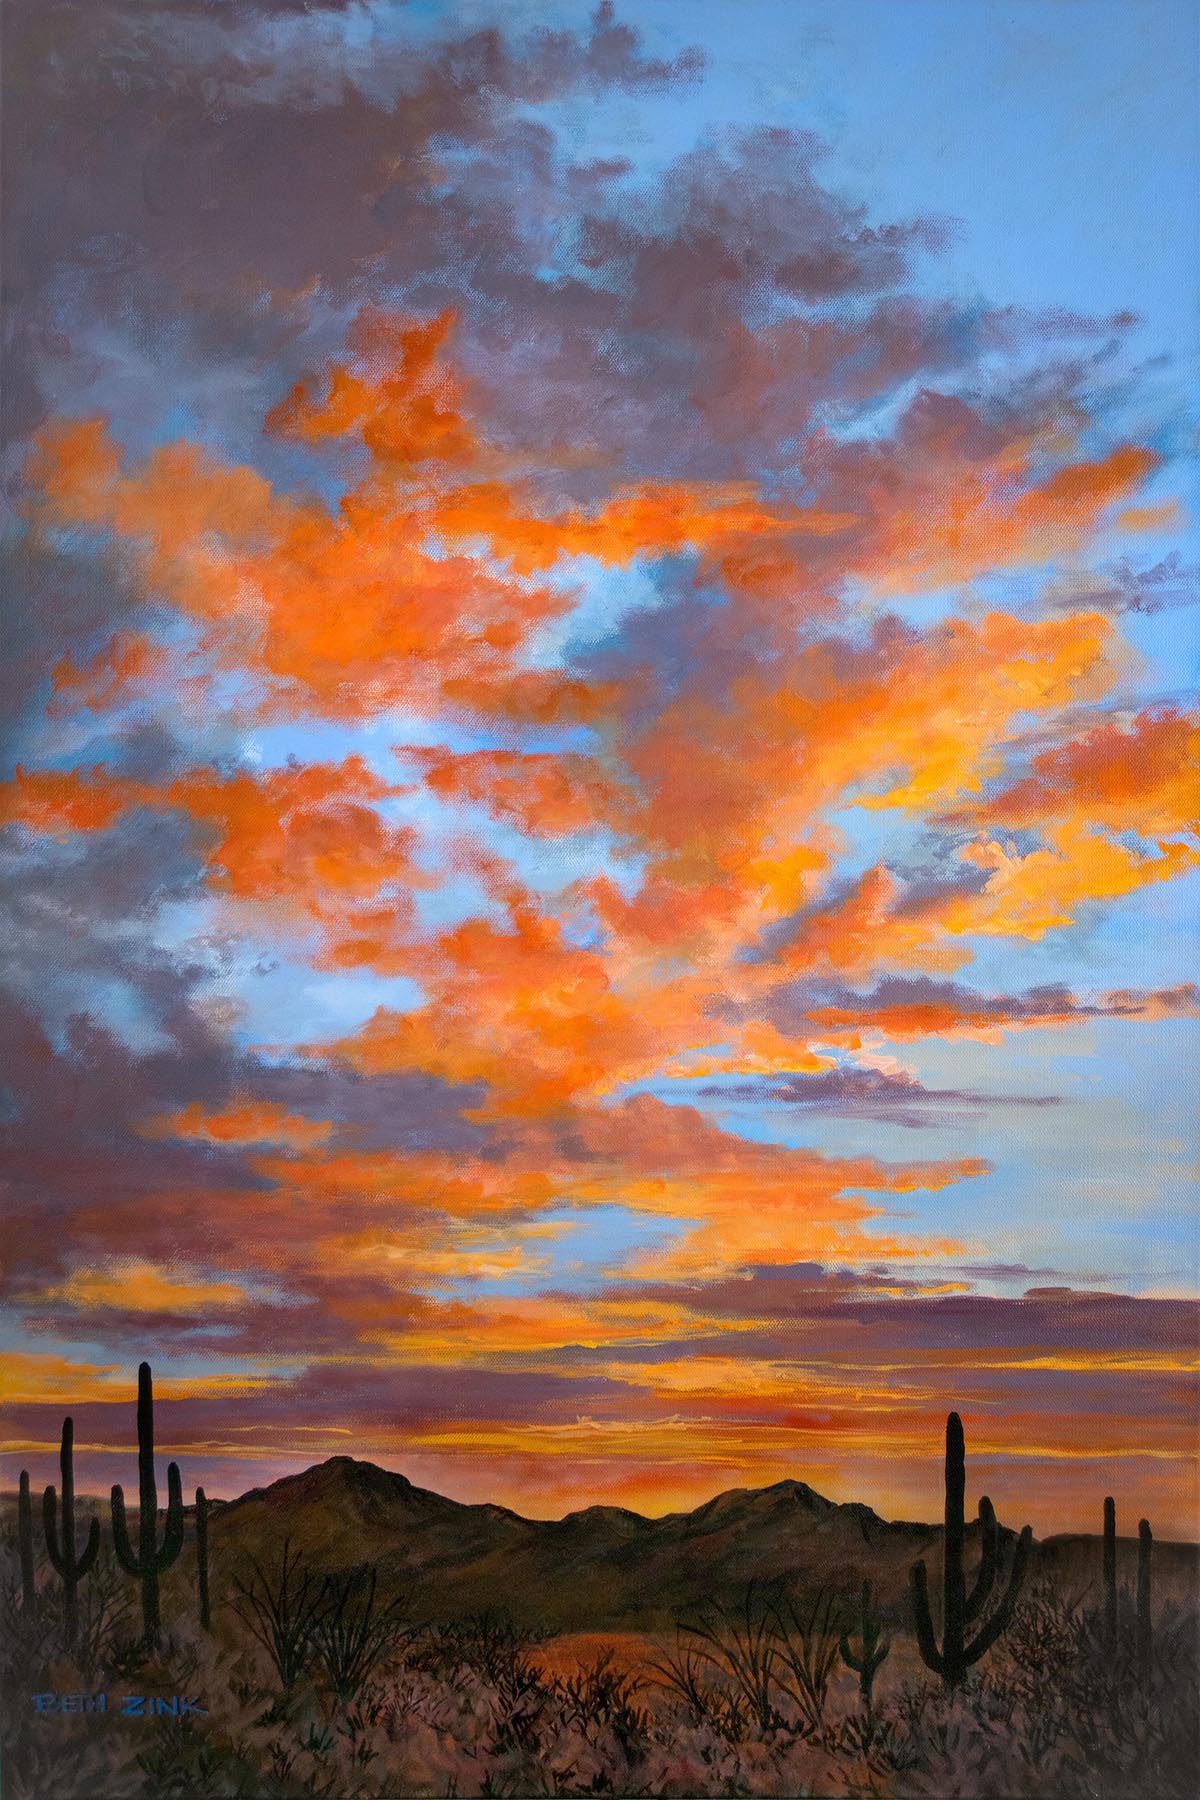 Afterglow 36x24 - $3900